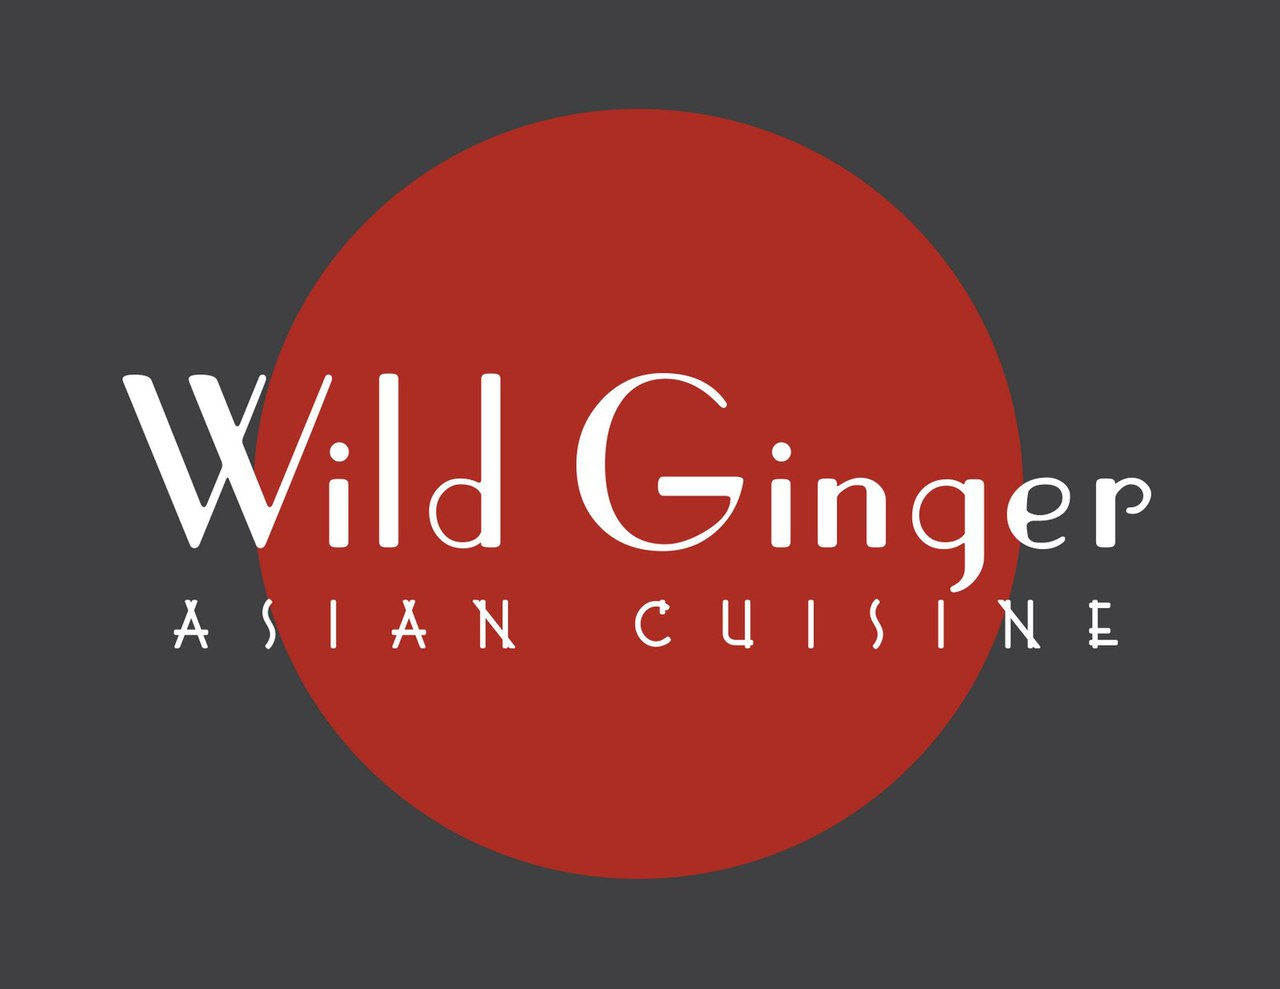 Wild Ginger Asian Cuisine